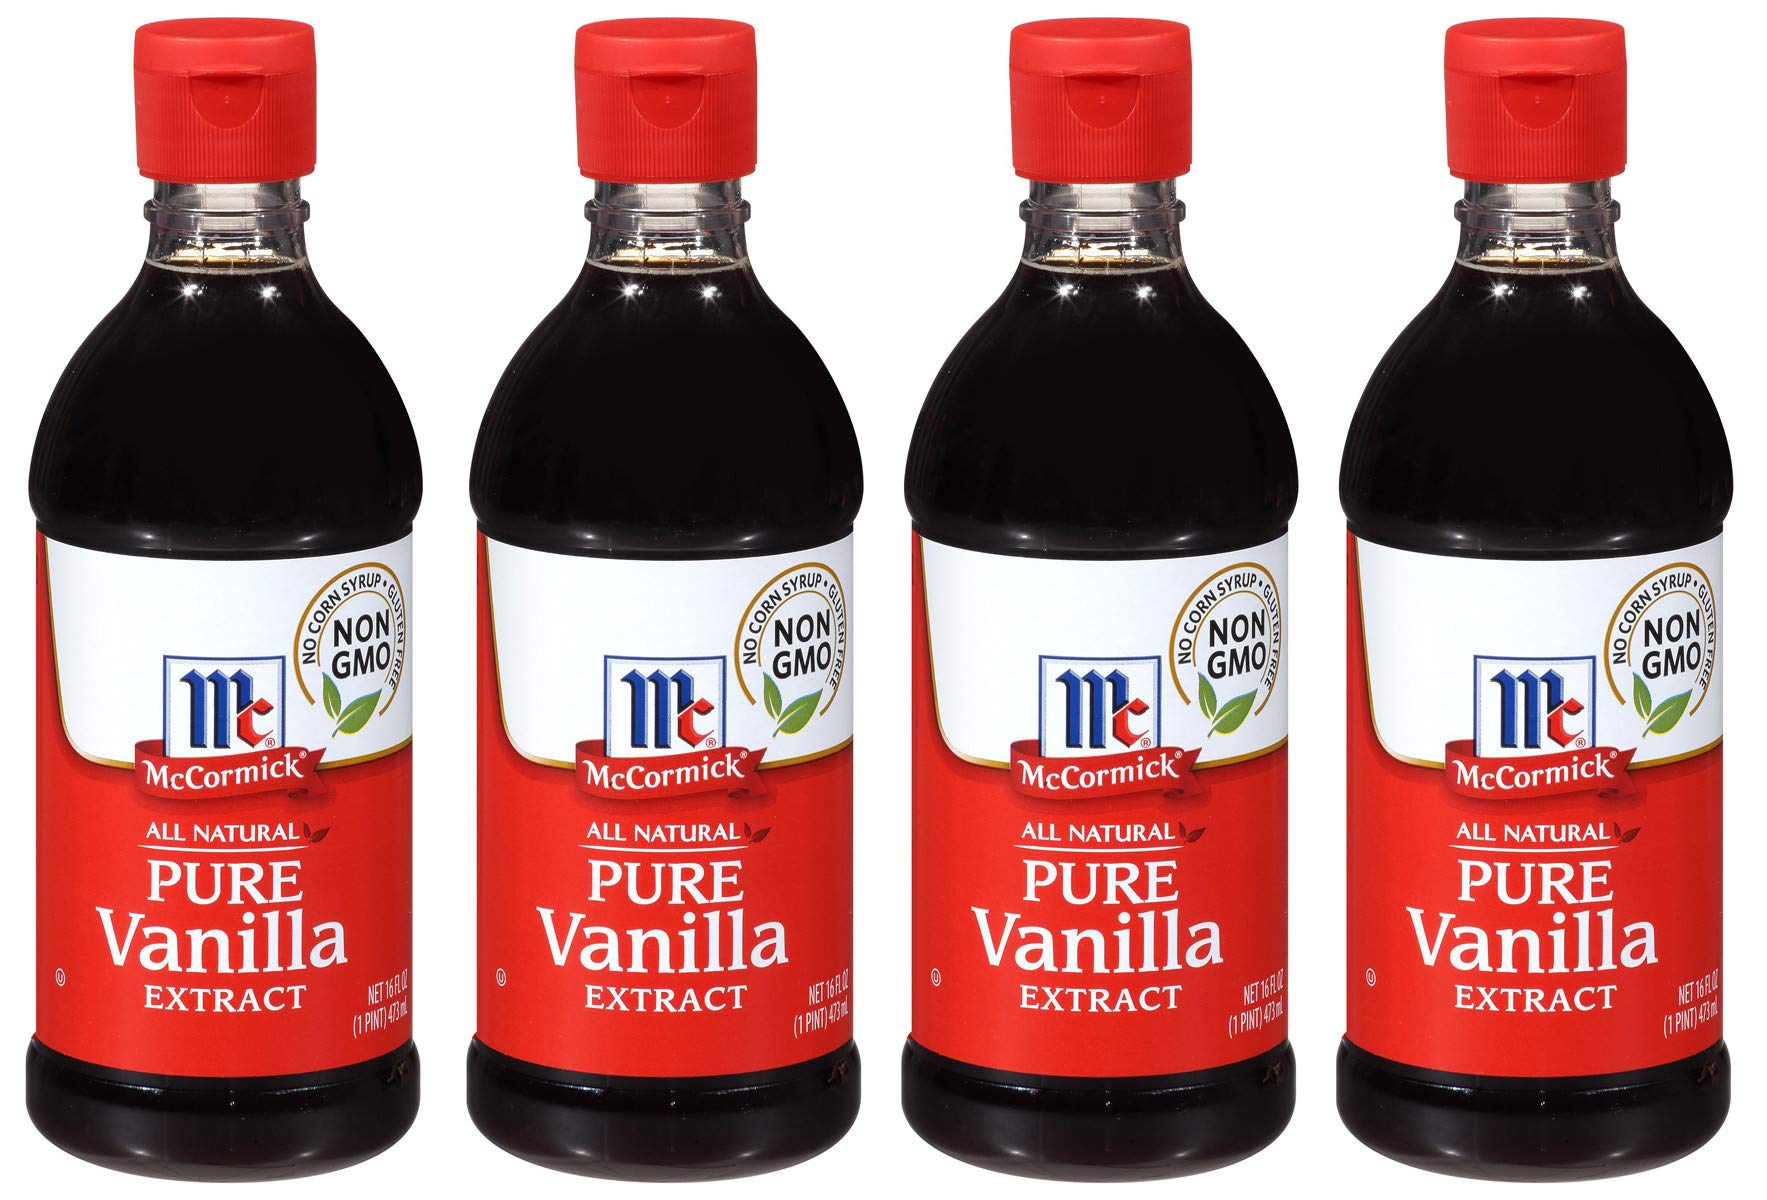 McCormick MJC All Natural Pure Vanilla Extract, Gluten-Free Vanilla, 4 Pack of 16 Oz